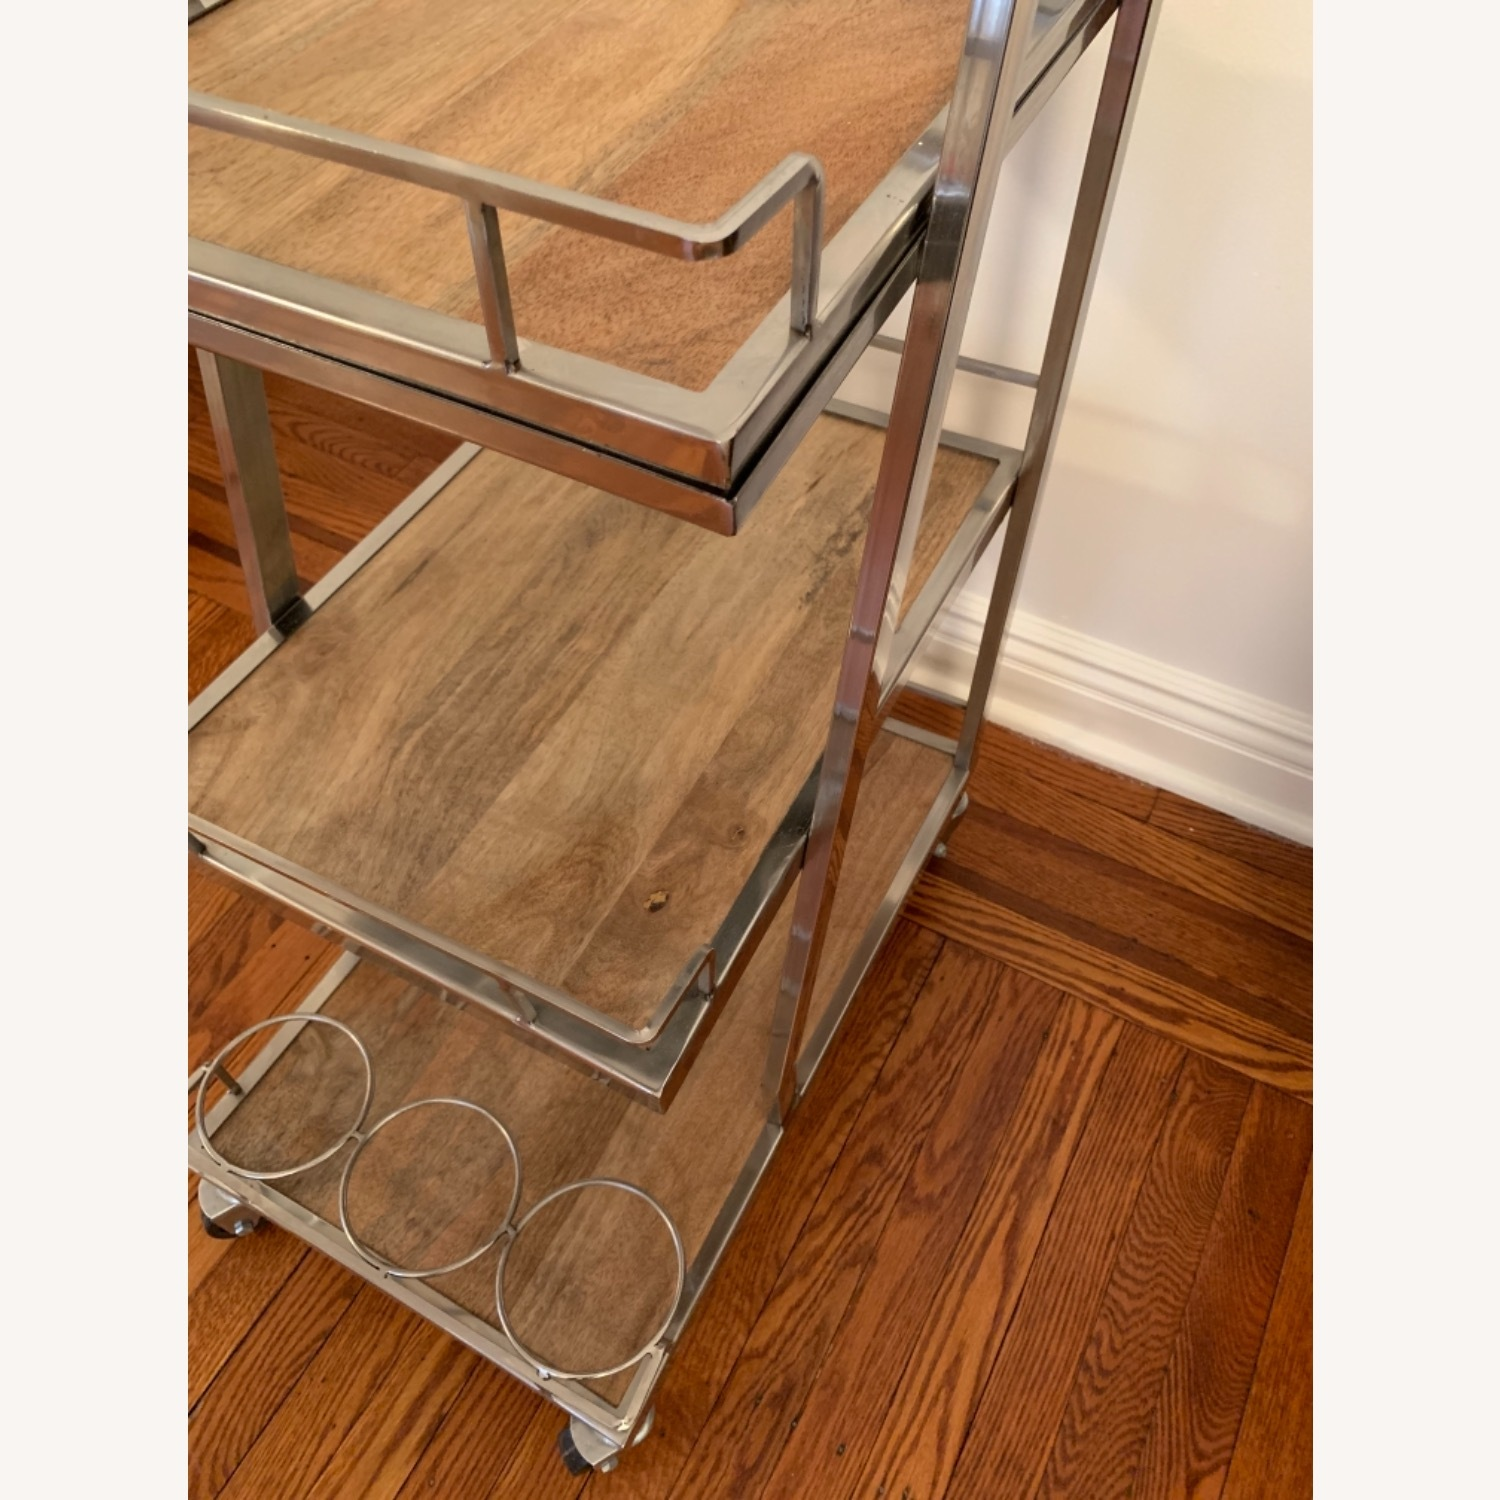 3 Tier Silver And Wood Bar Service Cart - image-3